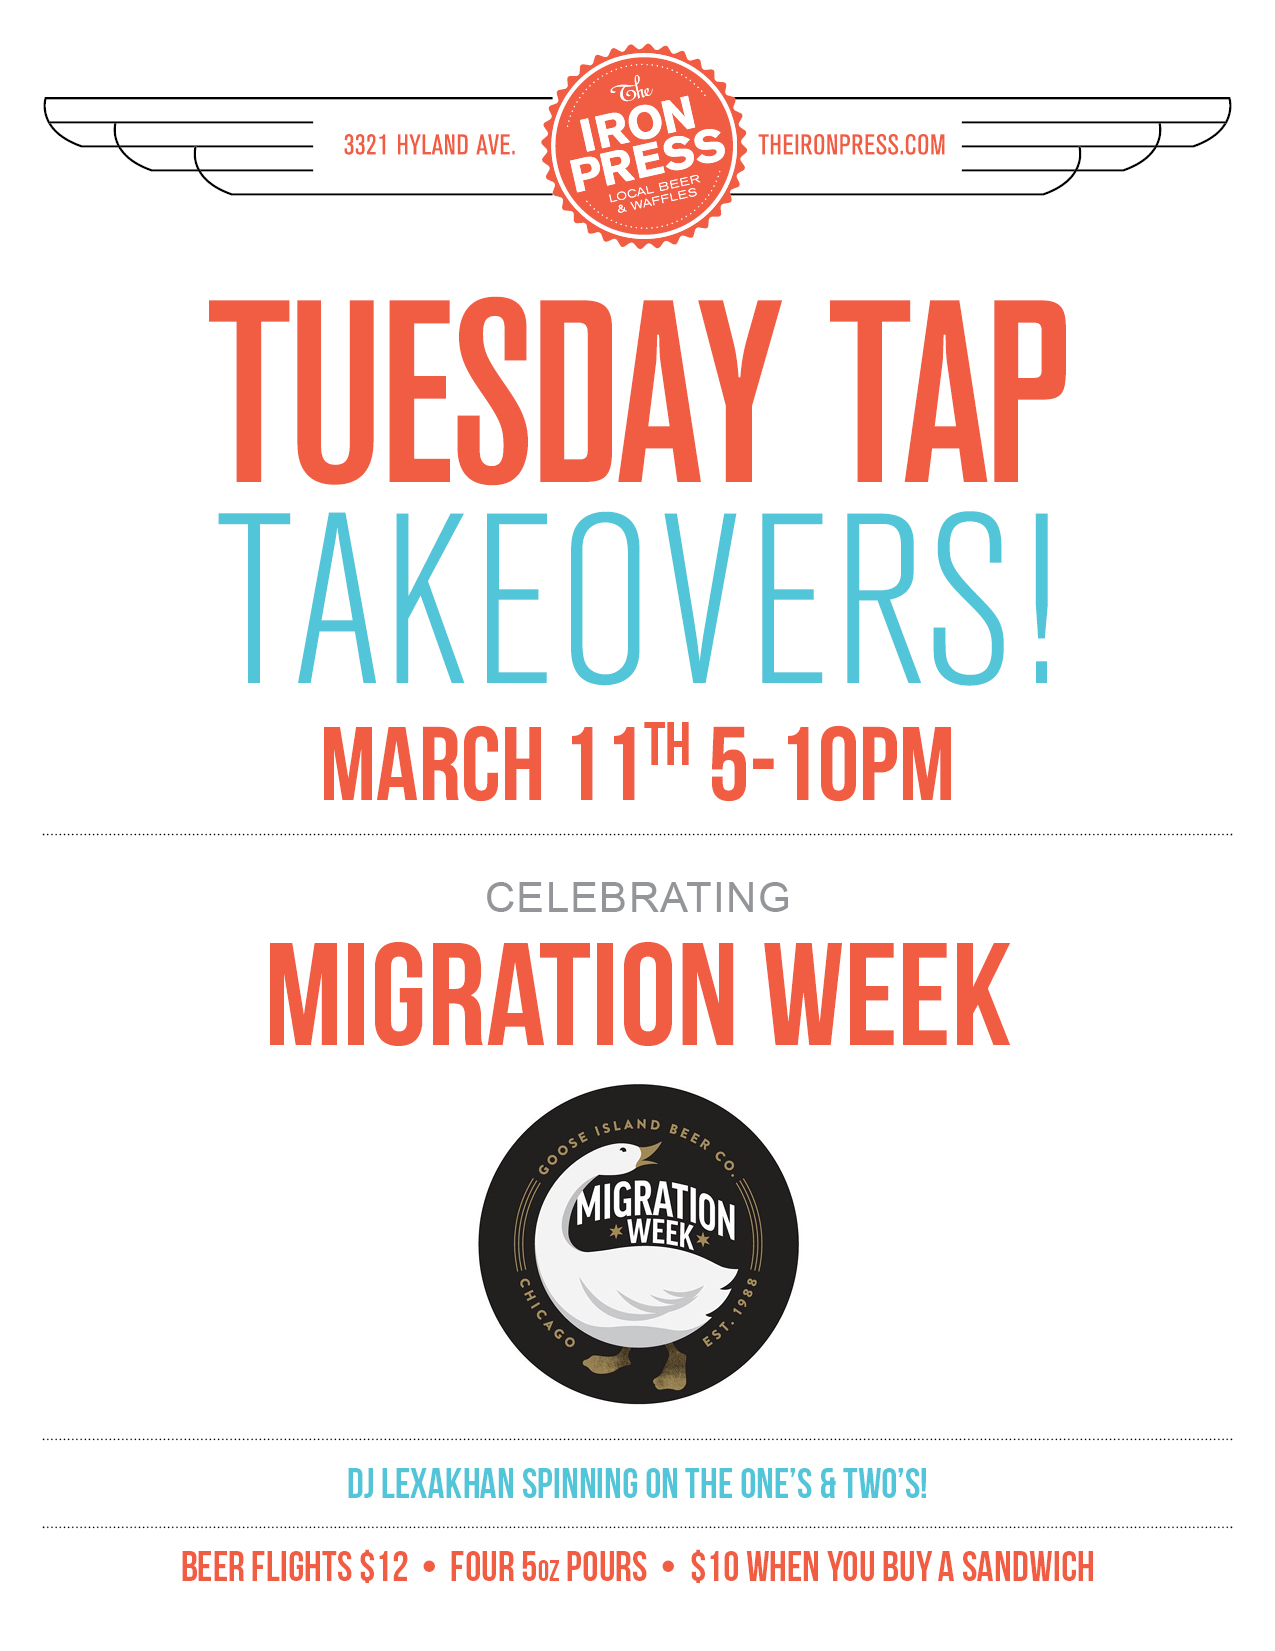 Migration Week x The Iron Press